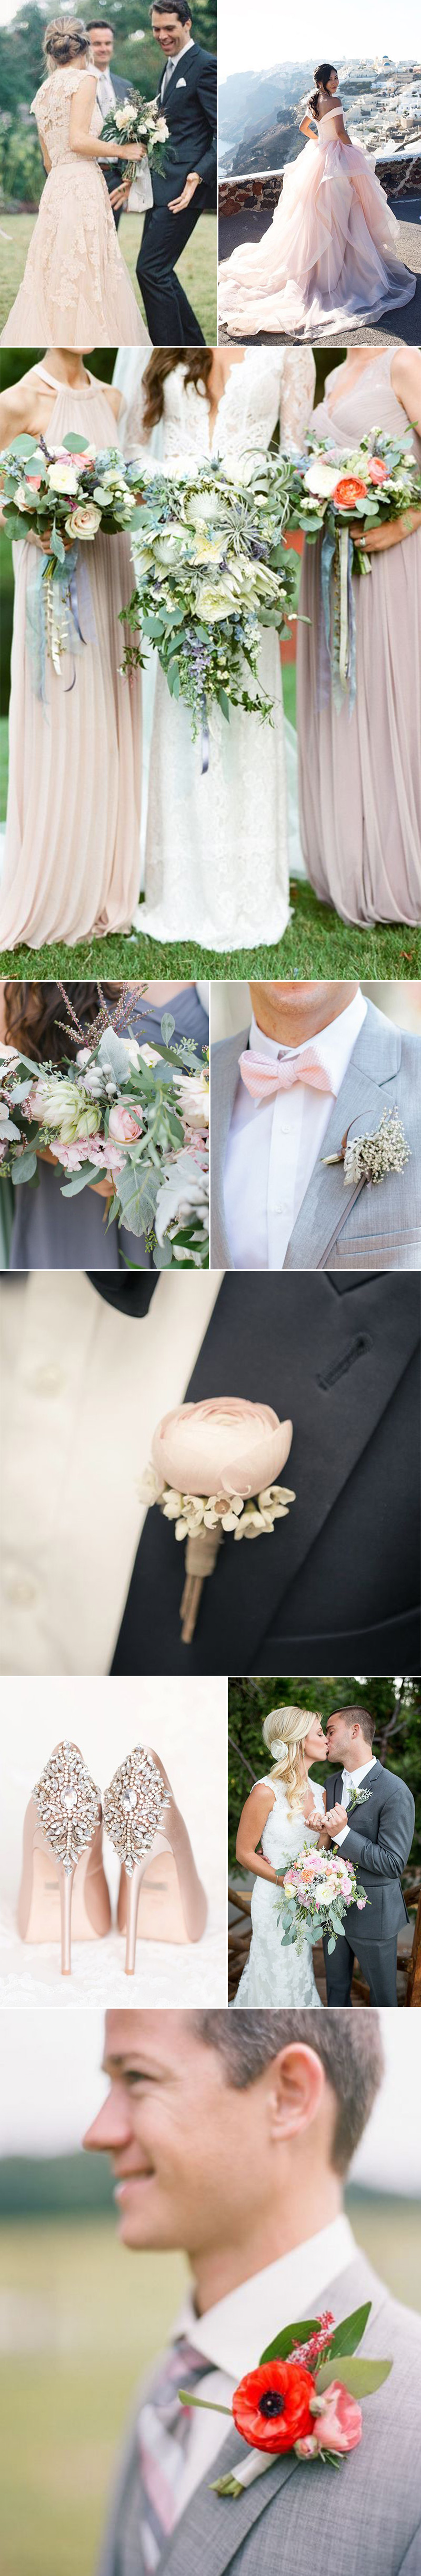 Weddings in Blush Pinks and Soft Grays